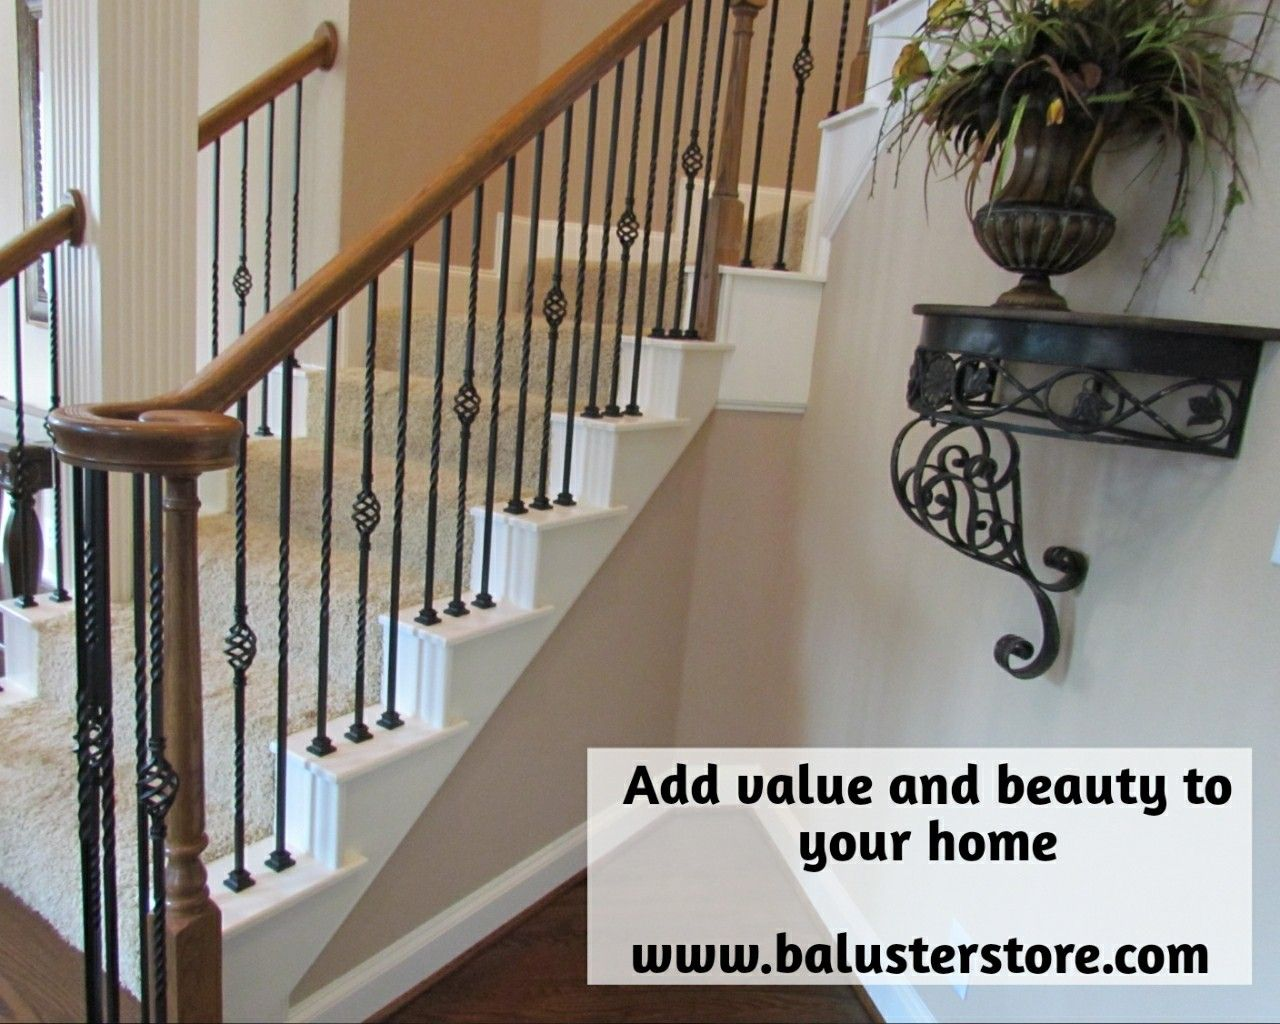 Title Iron Stair Spindles Made Of Wrought Iron Often Give A